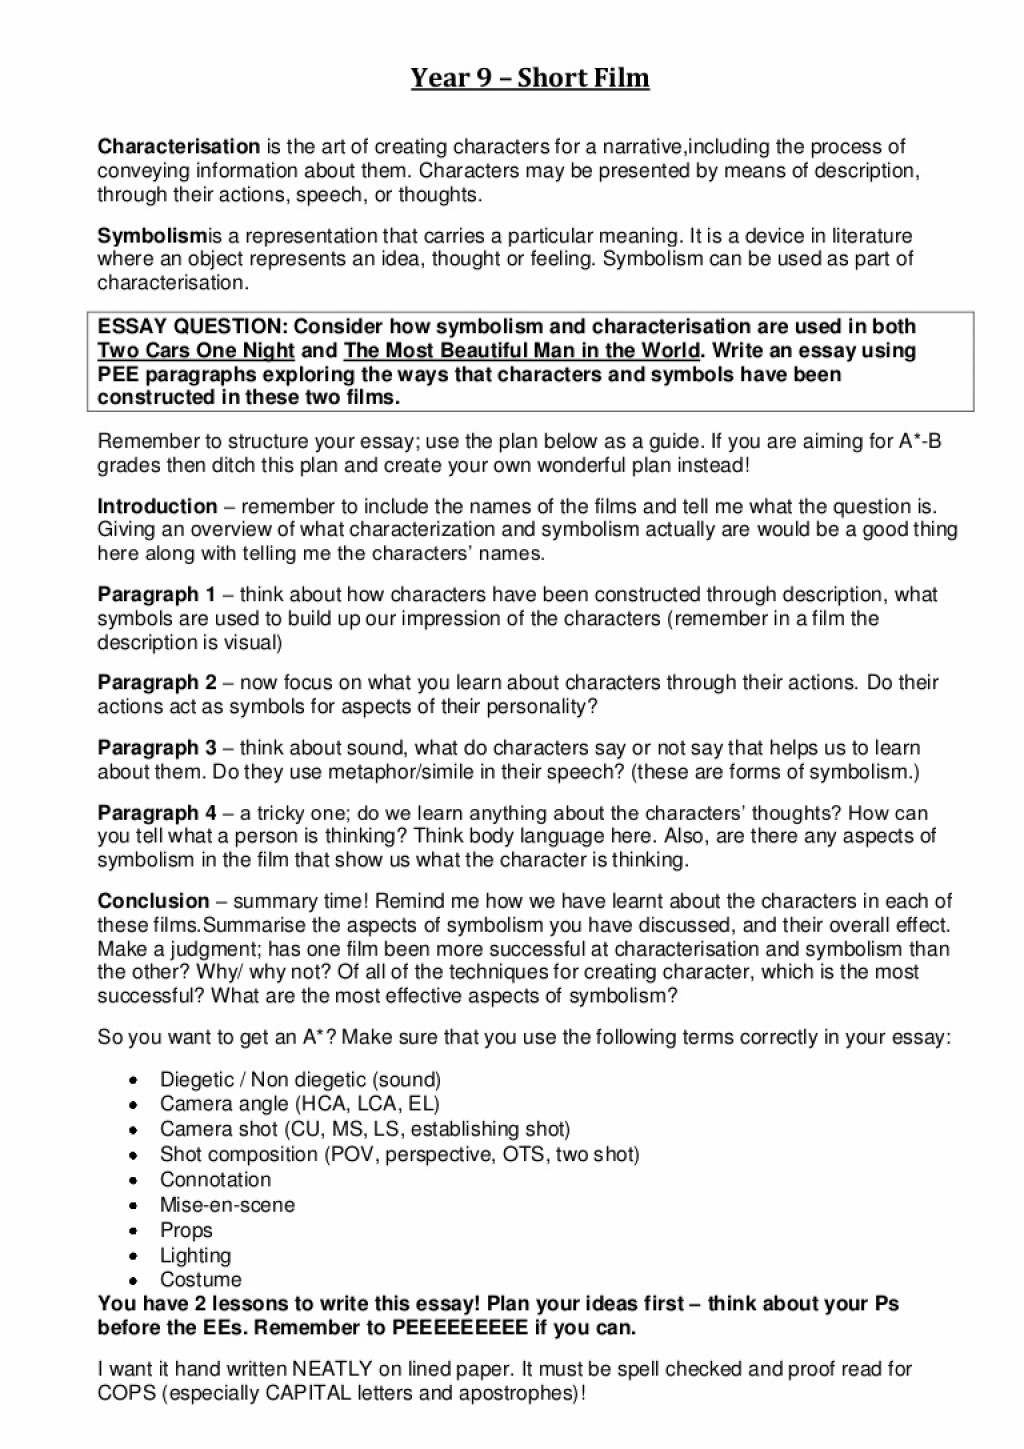 018 How Do You Spell Essay Example Year9shortfilm Chracterisationsymbolismessay Phpapp02 Thumbnail Beautiful U In English Plural Large